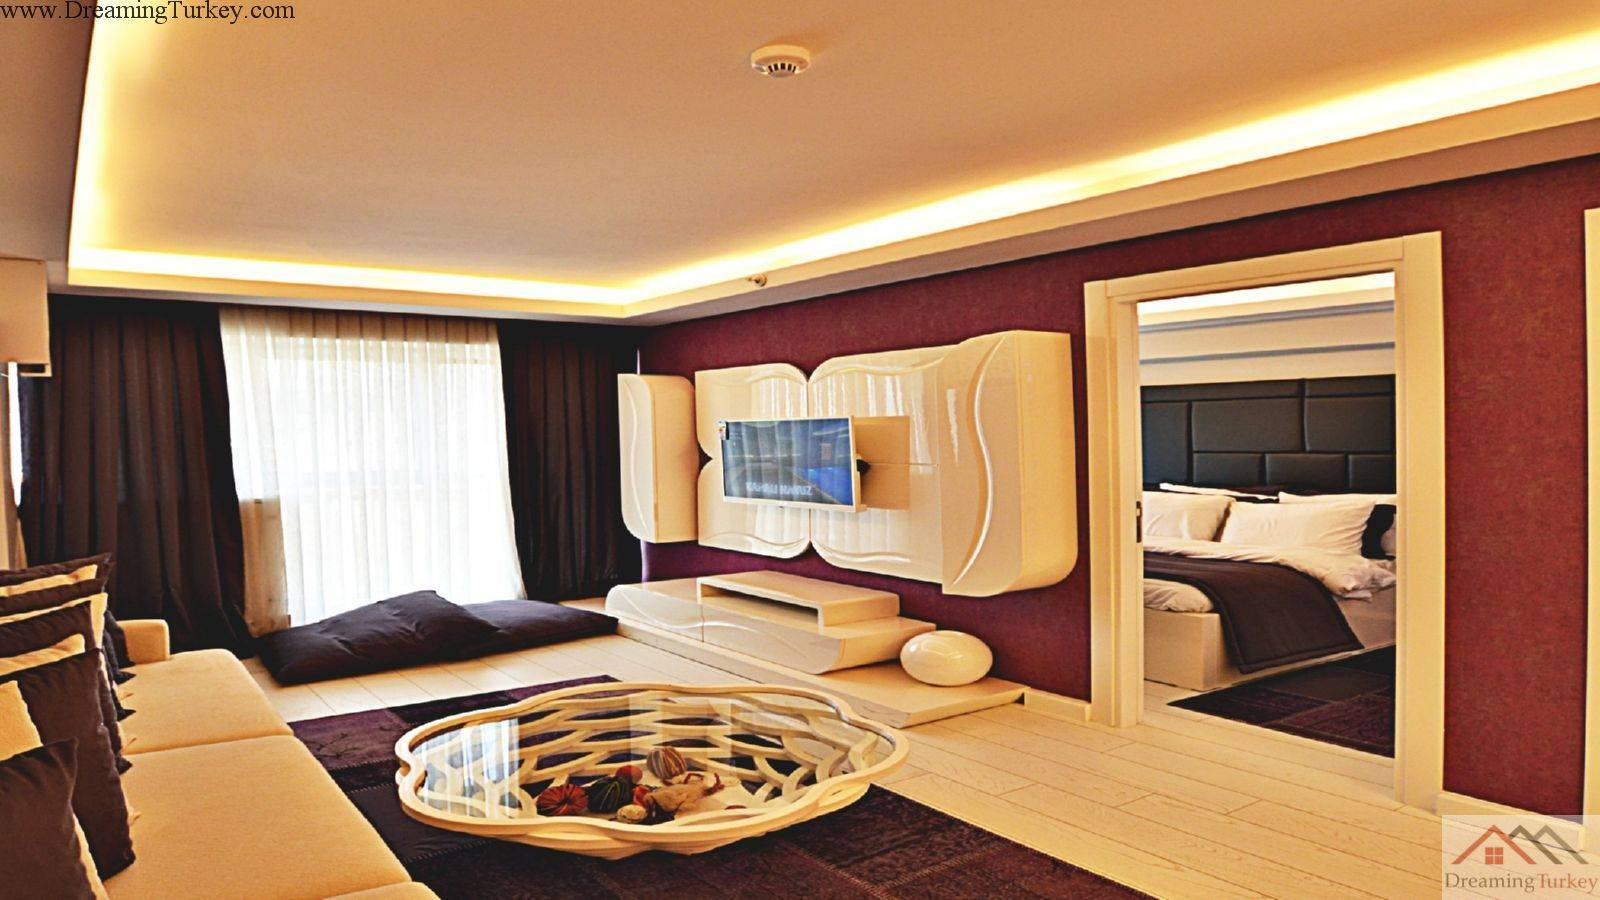 3-Bedroom Apartment inside a Complex in Istanbul